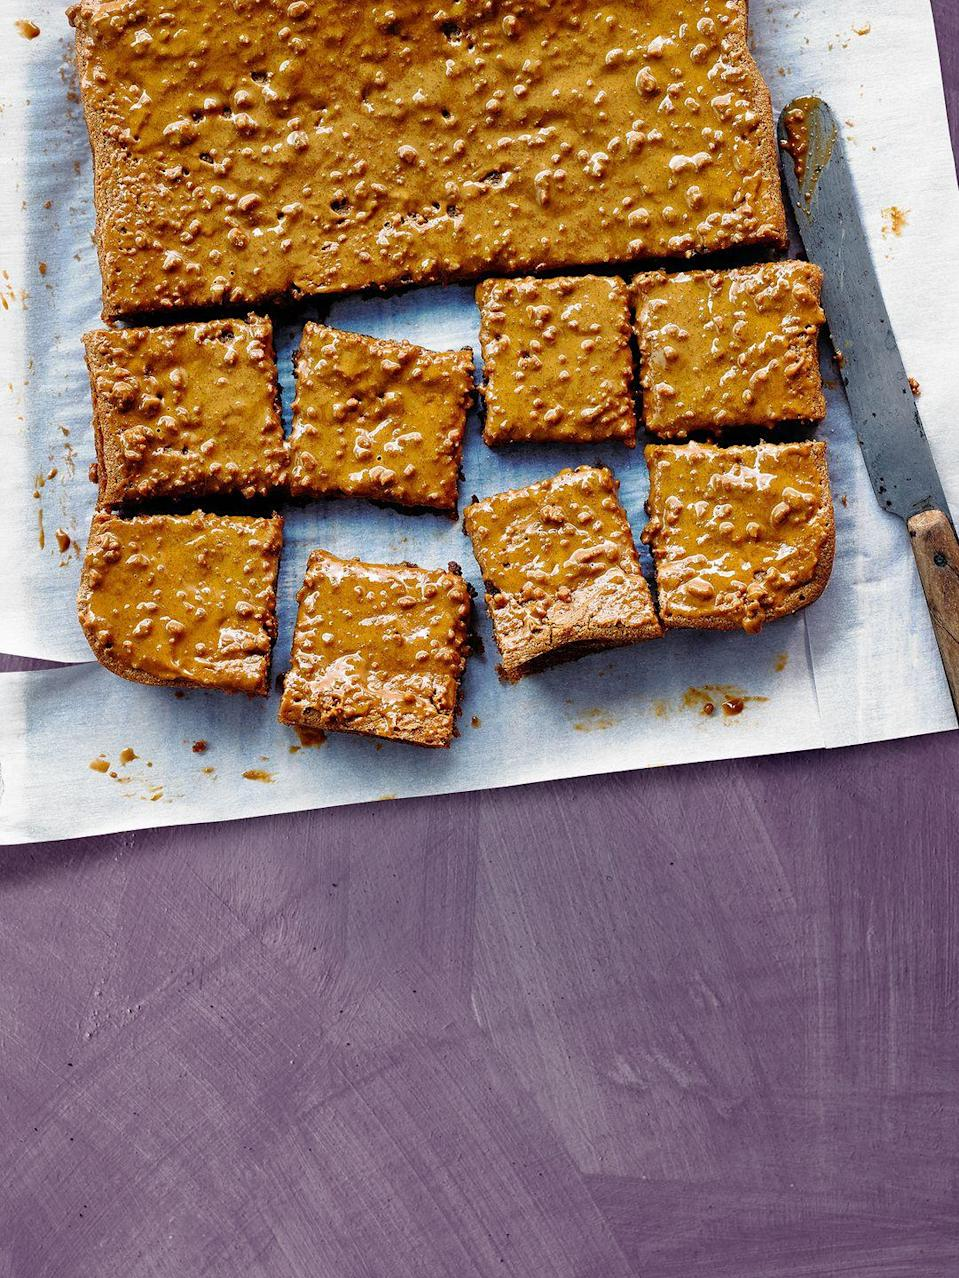 """<p>This Biscoff tray bake cake is probably the simplest bake you'll ever make - it only has three ingredients!</p><p><strong>Recipe: <a href=""""https://www.goodhousekeeping.com/uk/food/recipes/a26943194/biscoff-traybake/"""" rel=""""nofollow noopener"""" target=""""_blank"""" data-ylk=""""slk:Three-ingredient Biscoff tray bake"""" class=""""link rapid-noclick-resp"""">Three-ingredient Biscoff tray bake</a></strong></p>"""